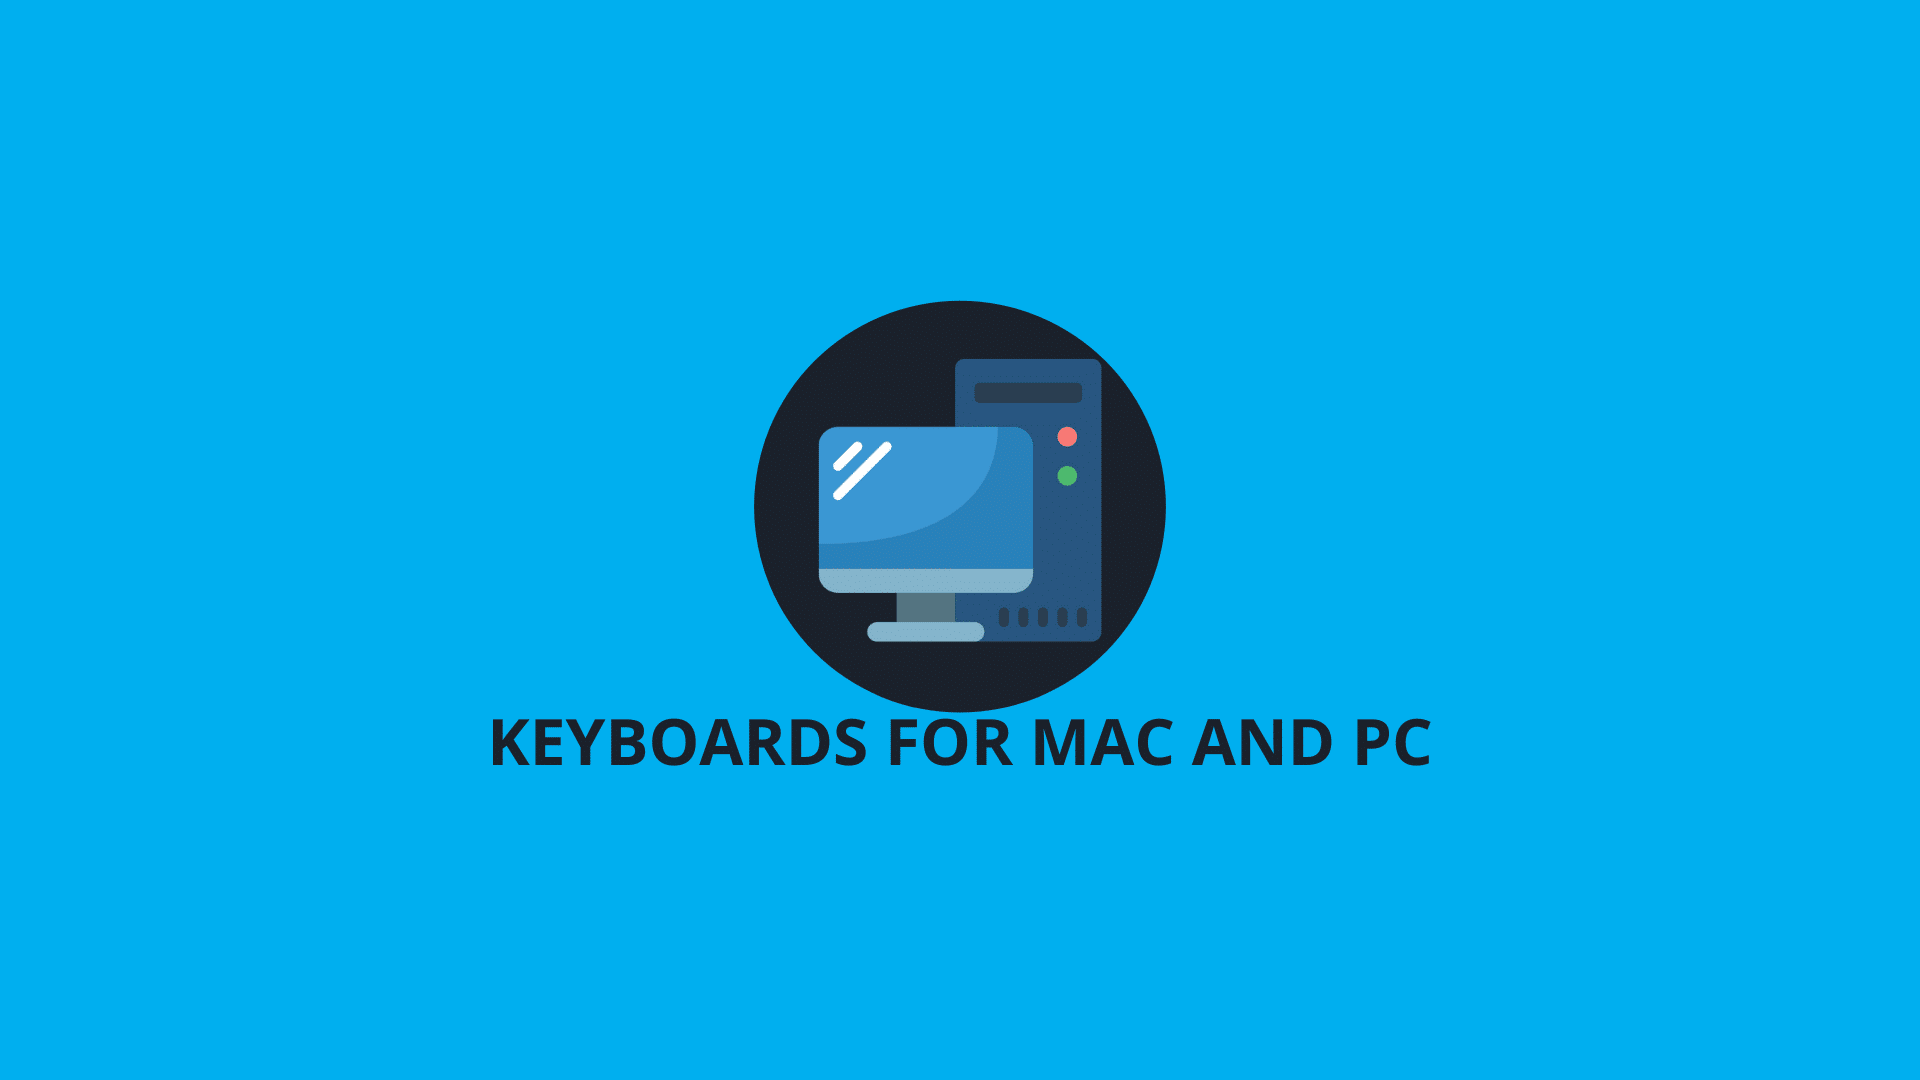 Keyboards for Mac and PC